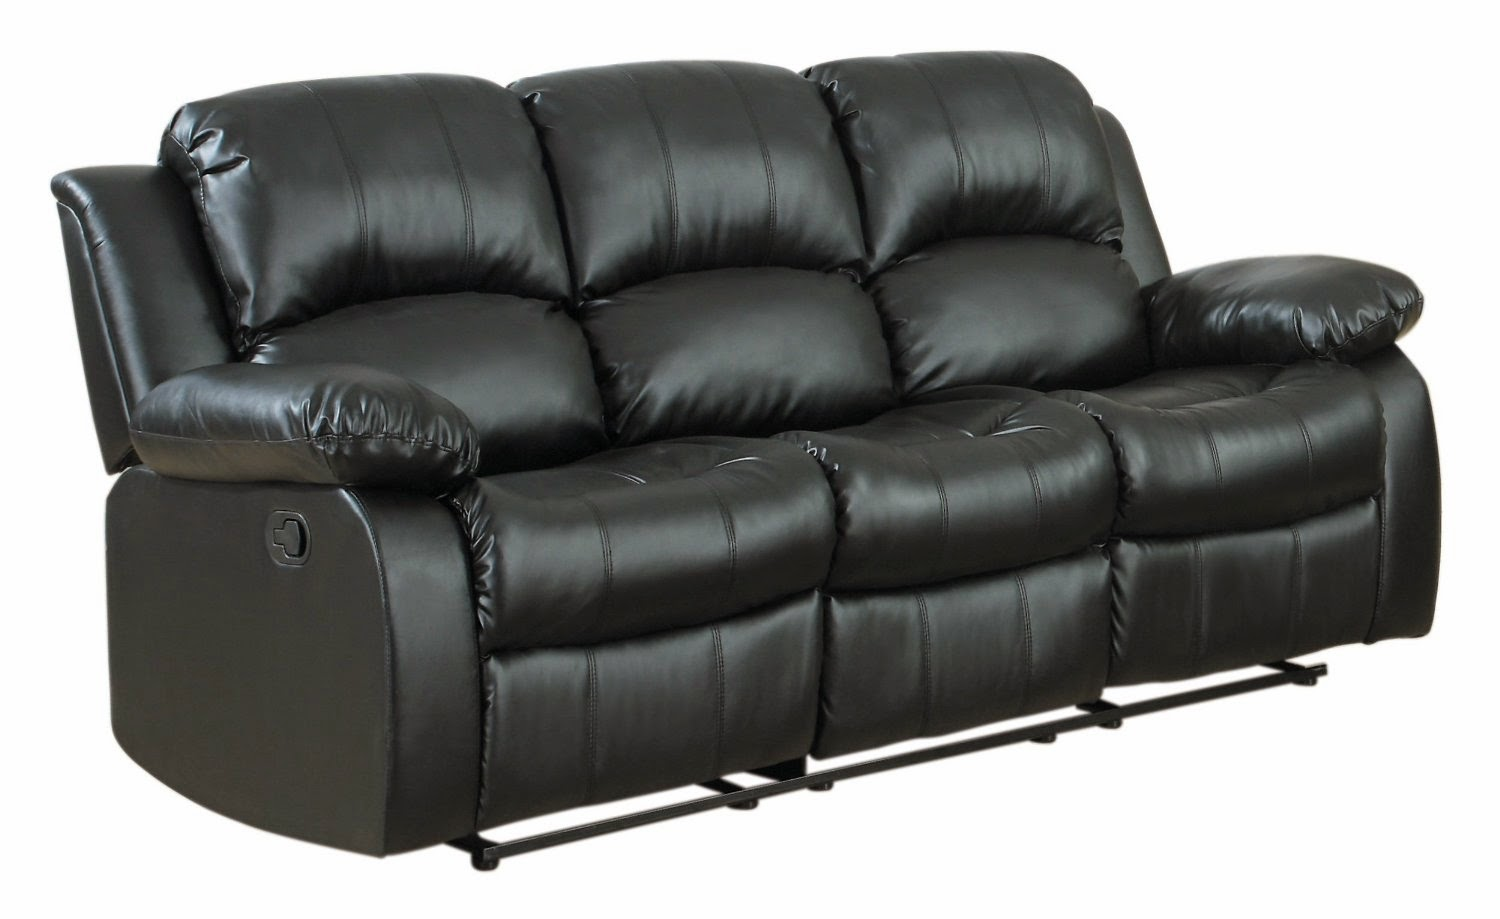 Swell Sofa Recliner Reviews Black Leather 2 Seater Recliner Sofa Gmtry Best Dining Table And Chair Ideas Images Gmtryco